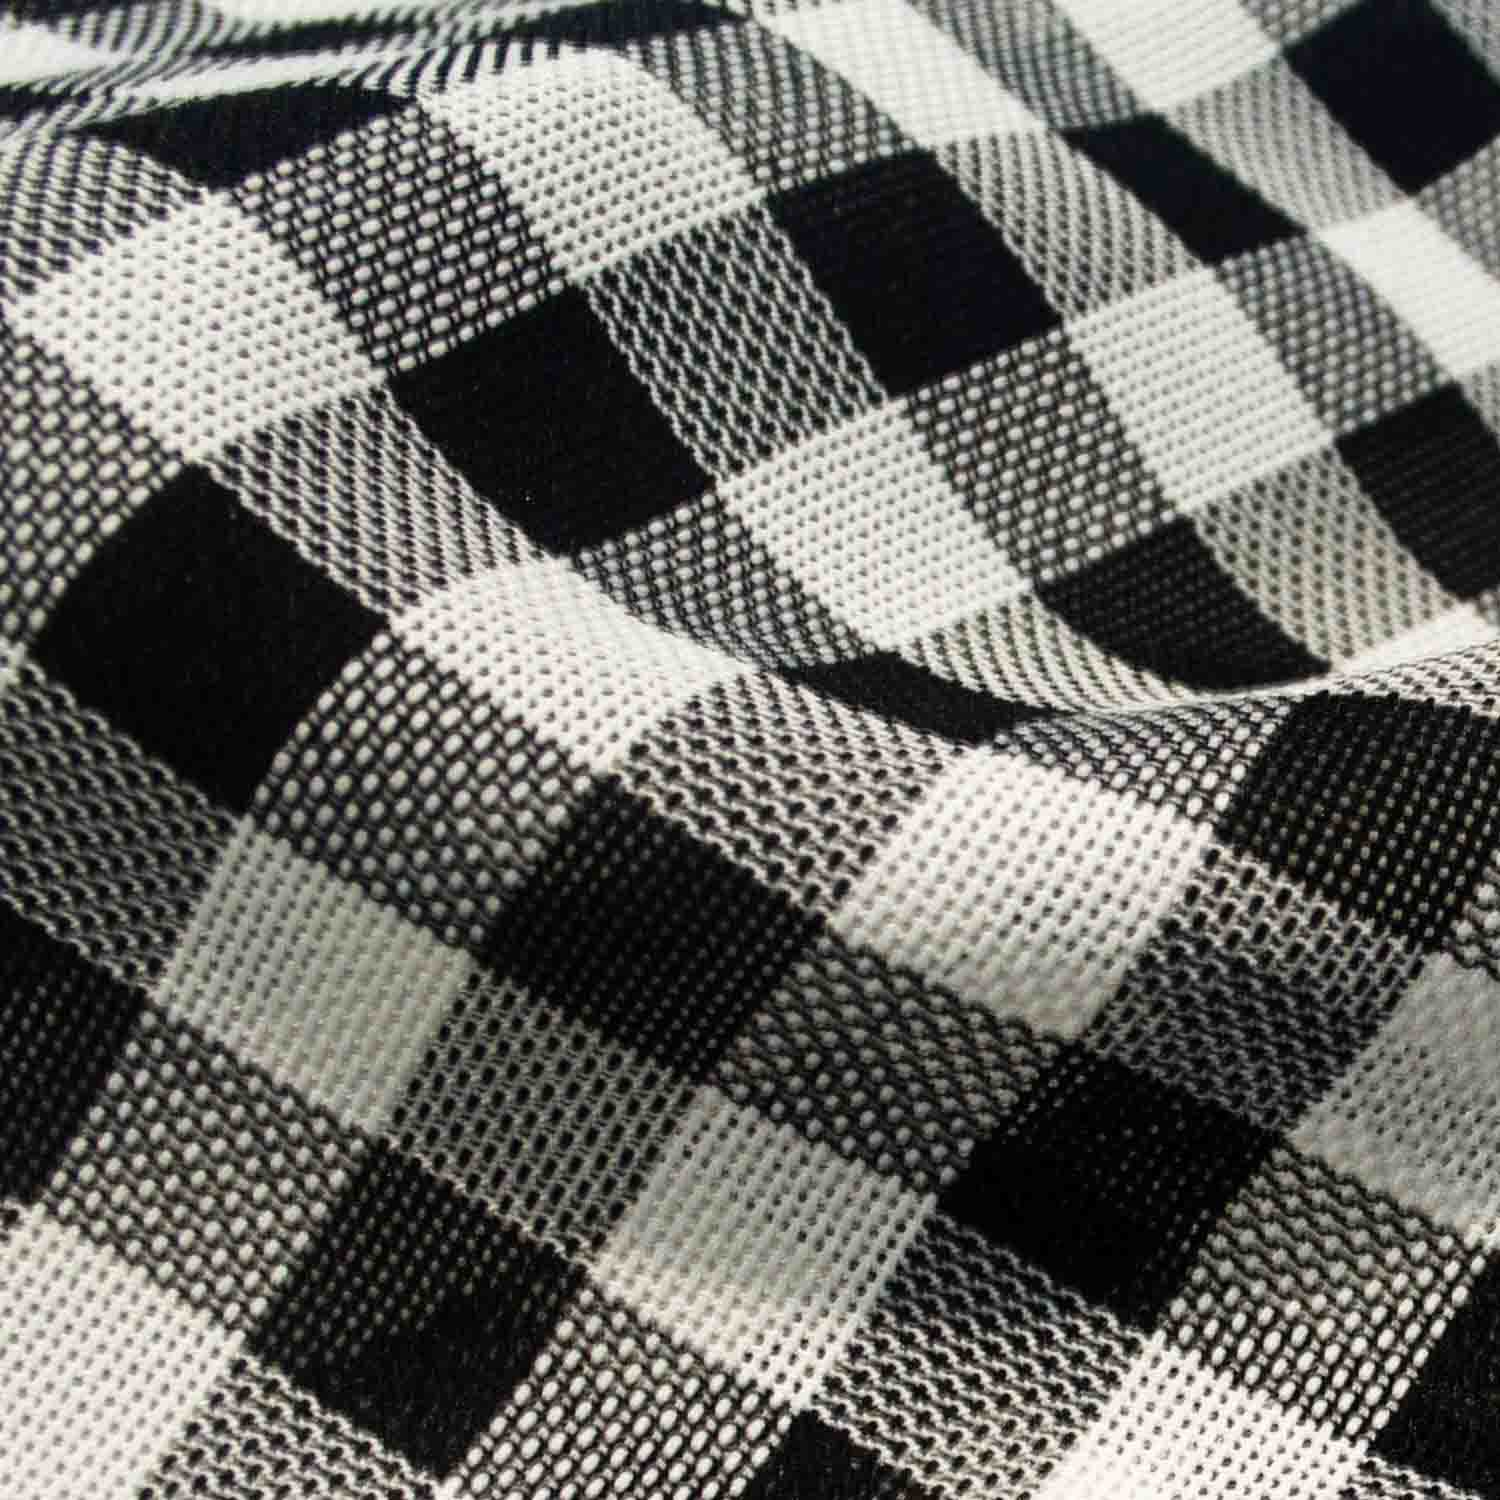 Yarn Dyed Polyester Fabric for Woman Dress Skirt Coat Garment.